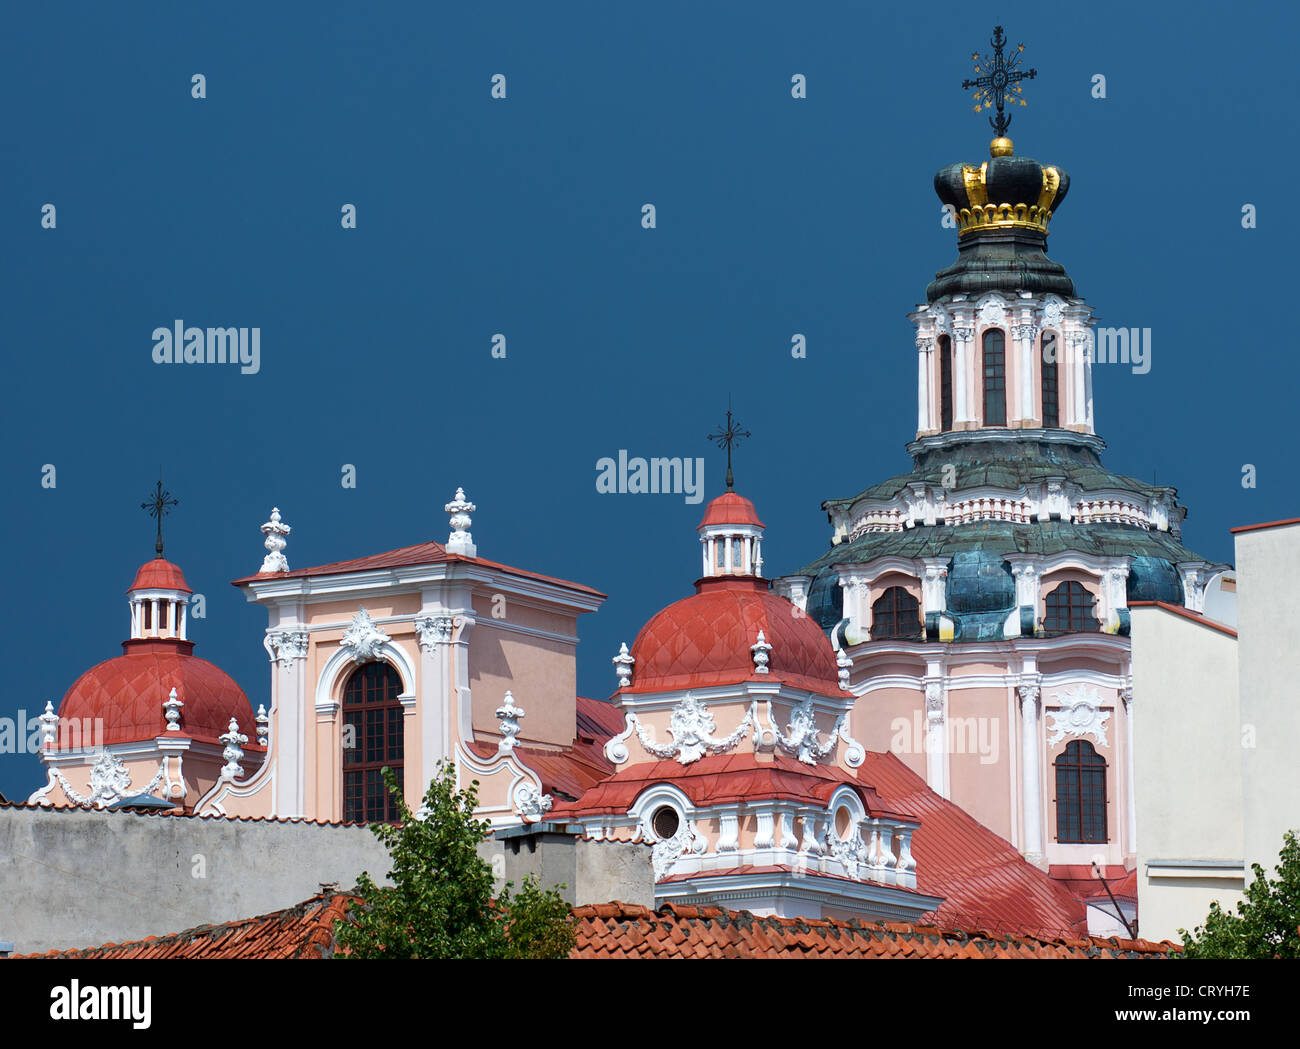 The Jesuit Church of Saint Casimir towers in Vilnius, Lithuania with blue sky background - Stock Image